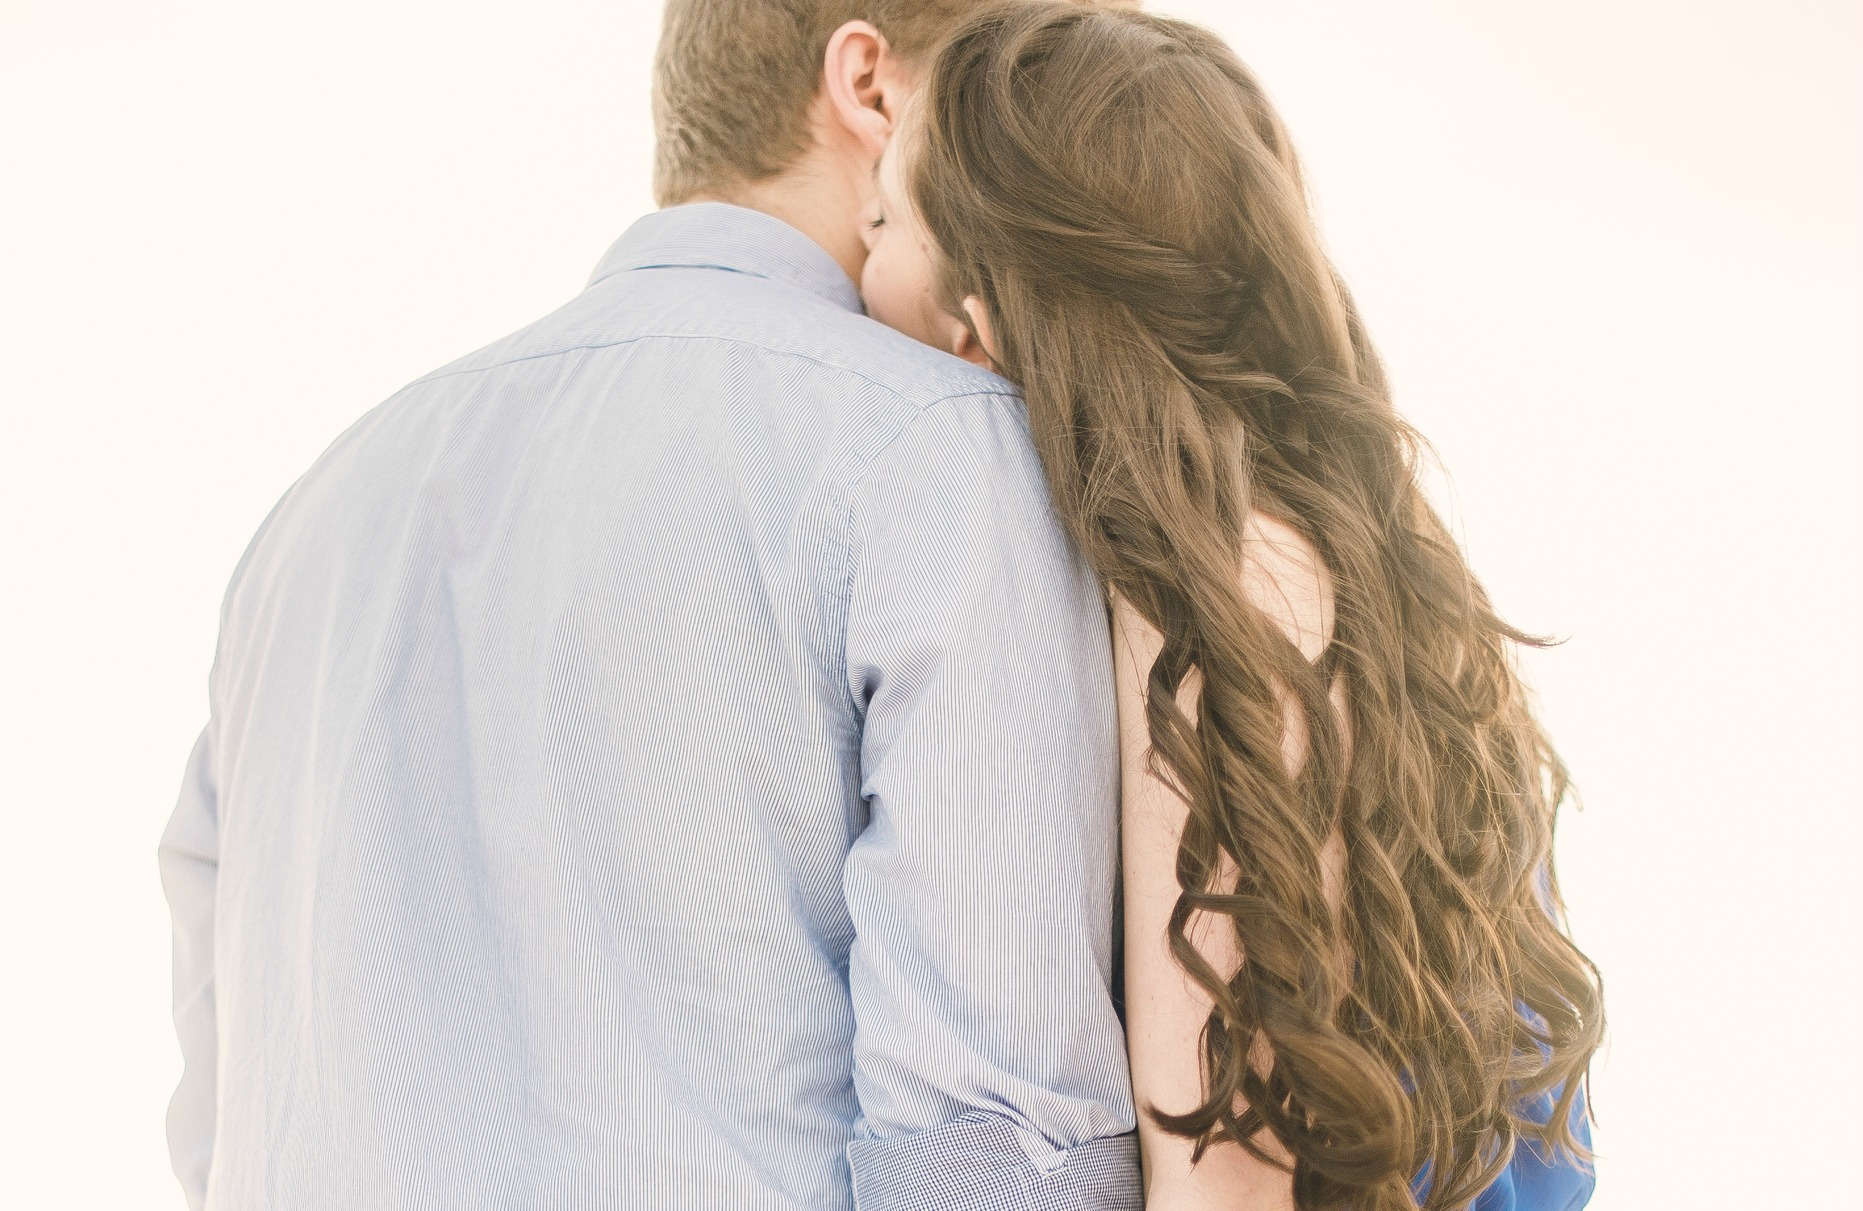 A Surprisingly Simple Way to Bring Peace to Your Marriage